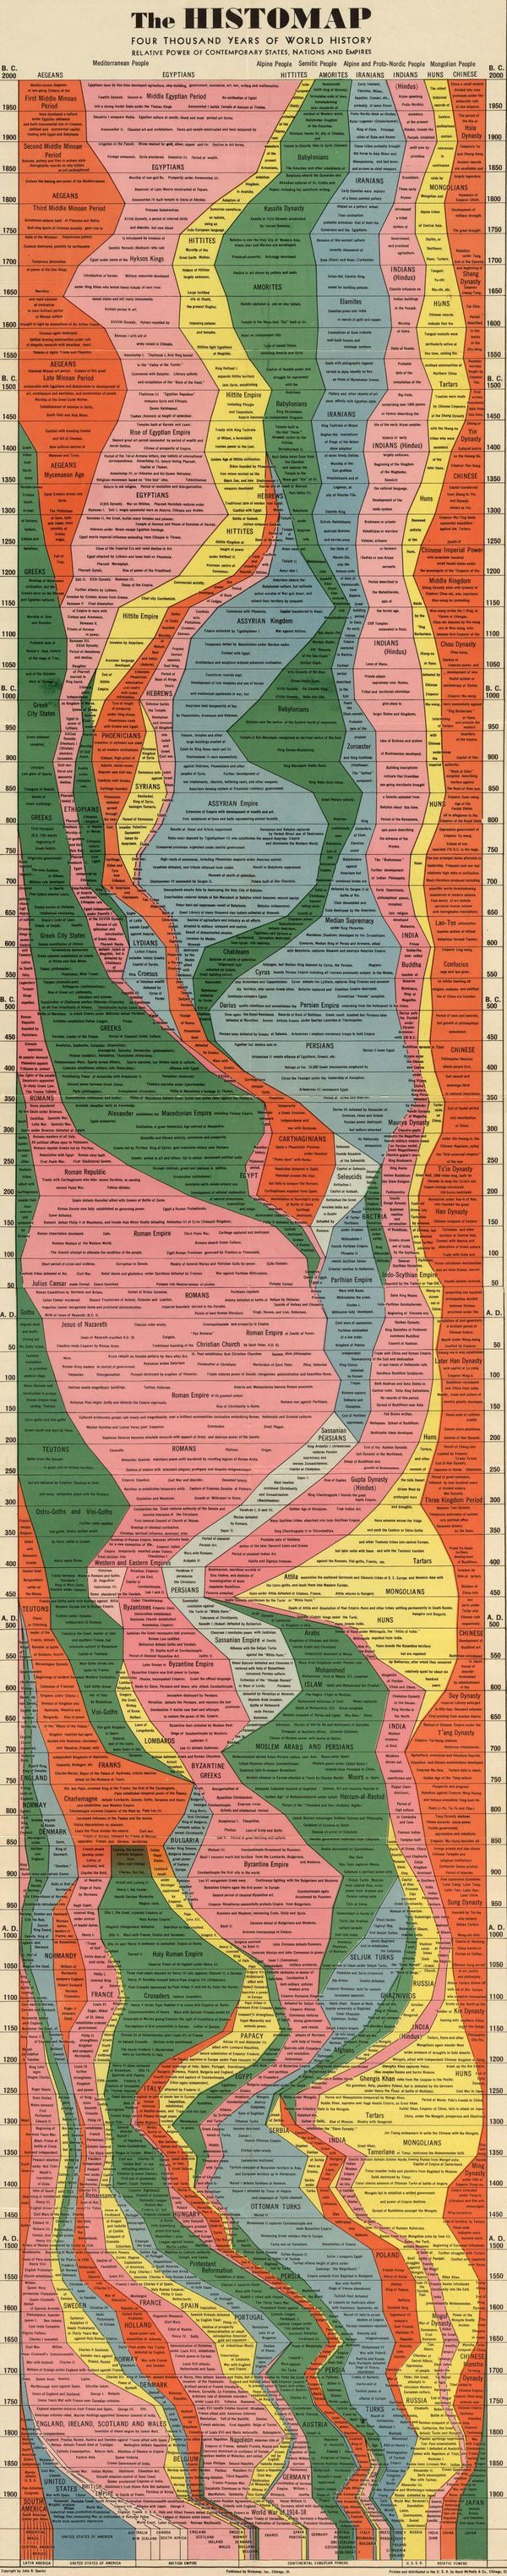 The Histomap: 4,000 Years of World HistoryComplete History, 4000 Years, World History, Entire History, Histomap, Business Design, Infographic, Human History, Thousand Years